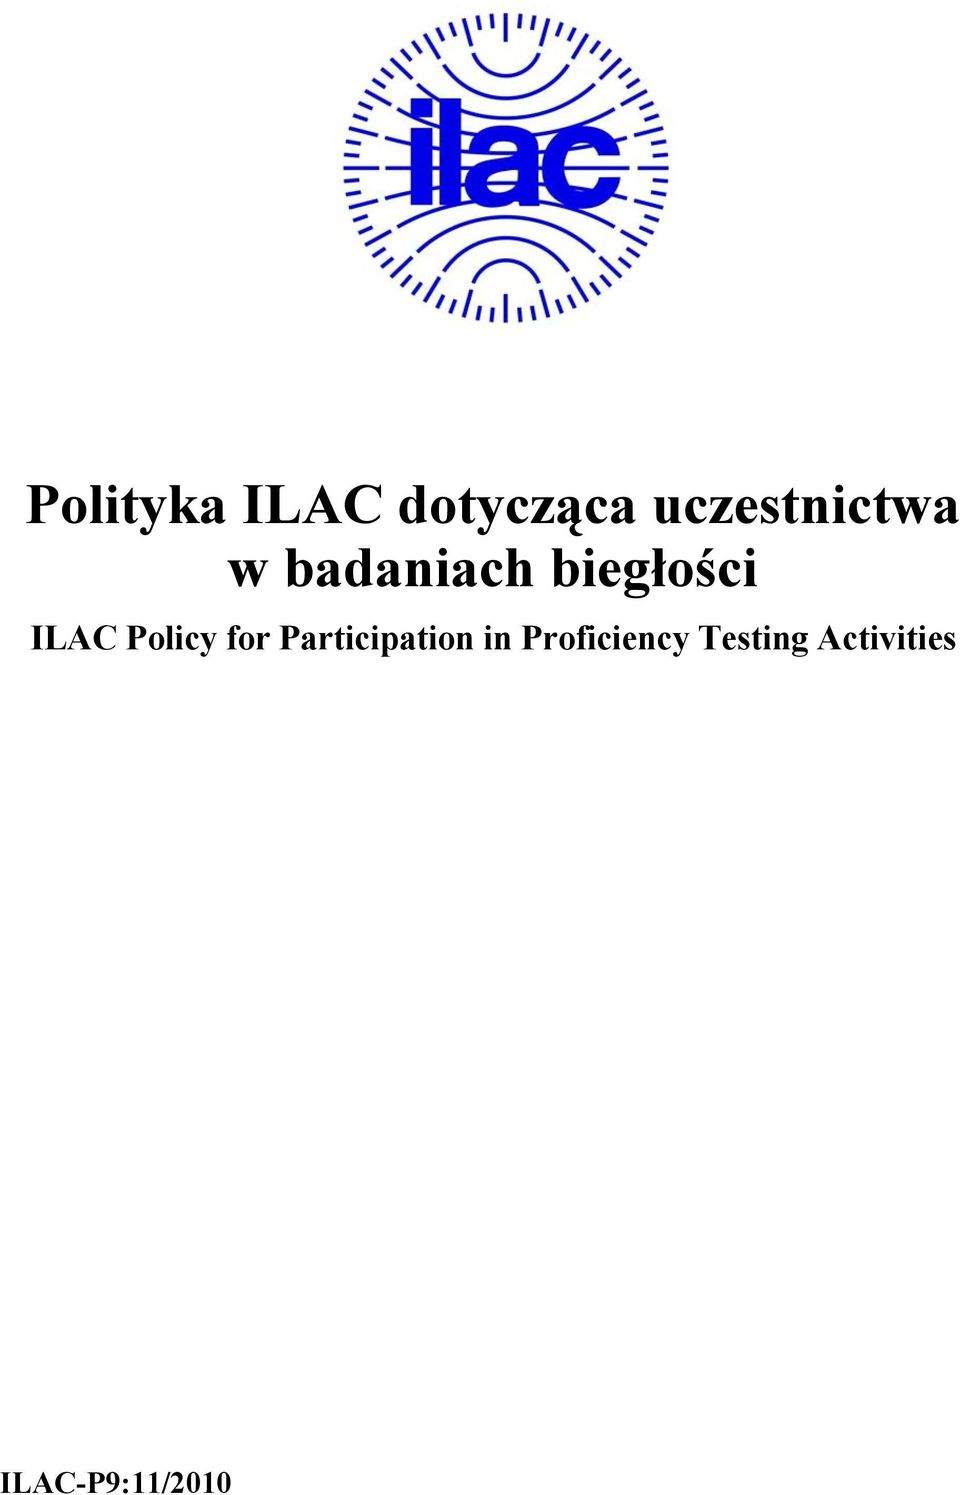 ILAC Policy for Participation in